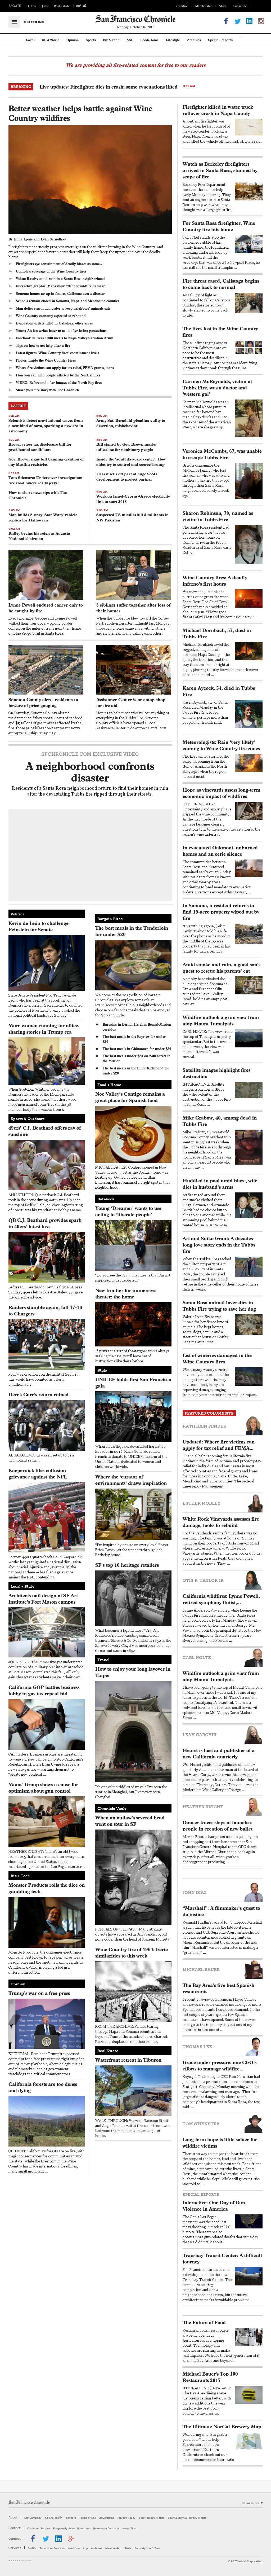 San Francisco Chronicle at Monday Oct. 16, 2017, 4:15 p.m. UTC